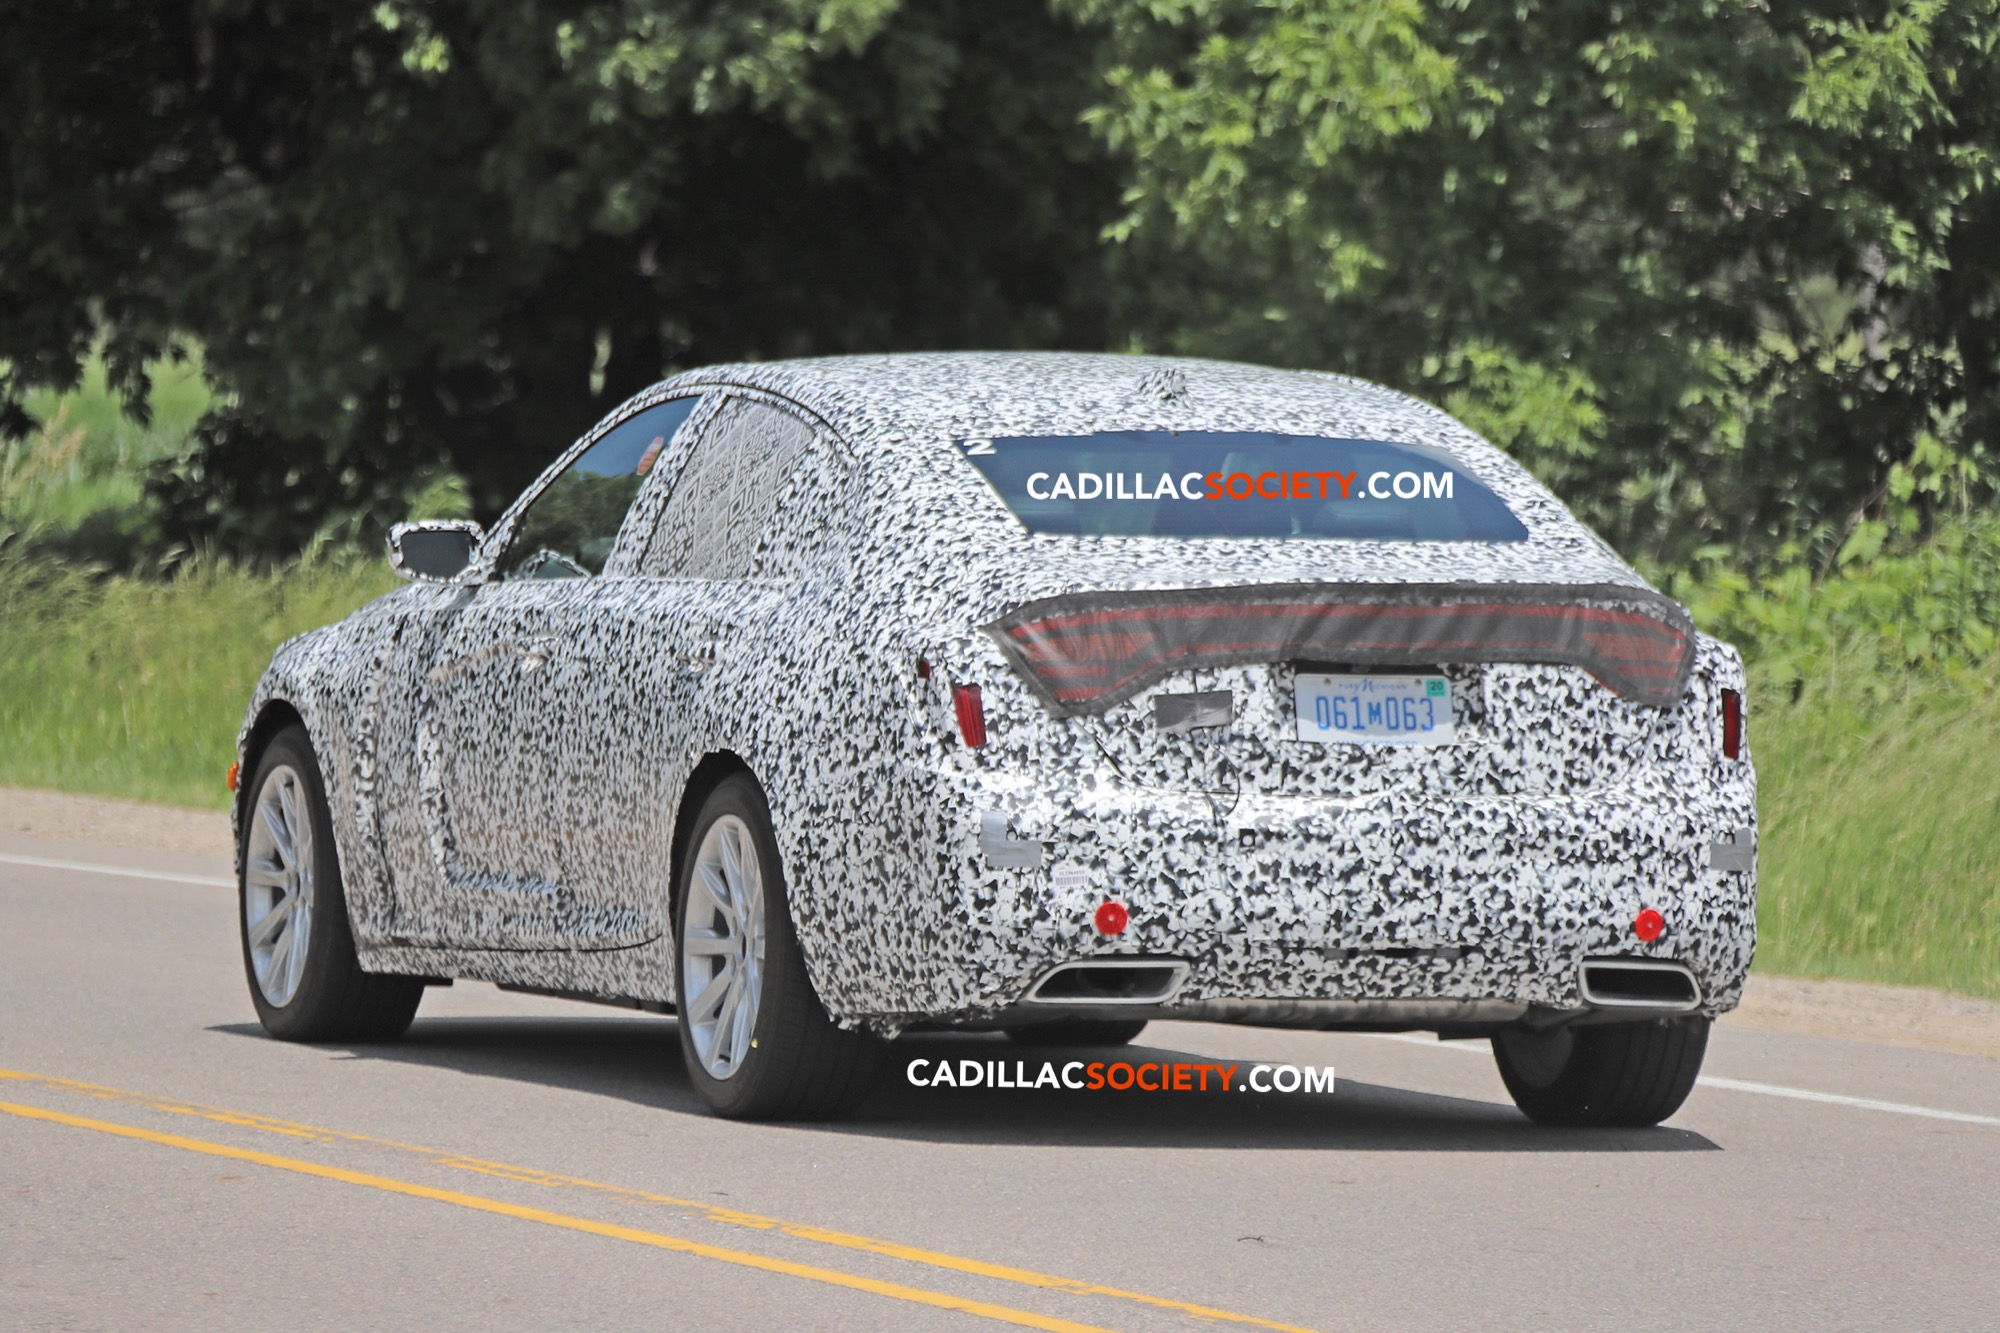 Cadillac CT5 Information, Pictures, Specs, Wiki & More